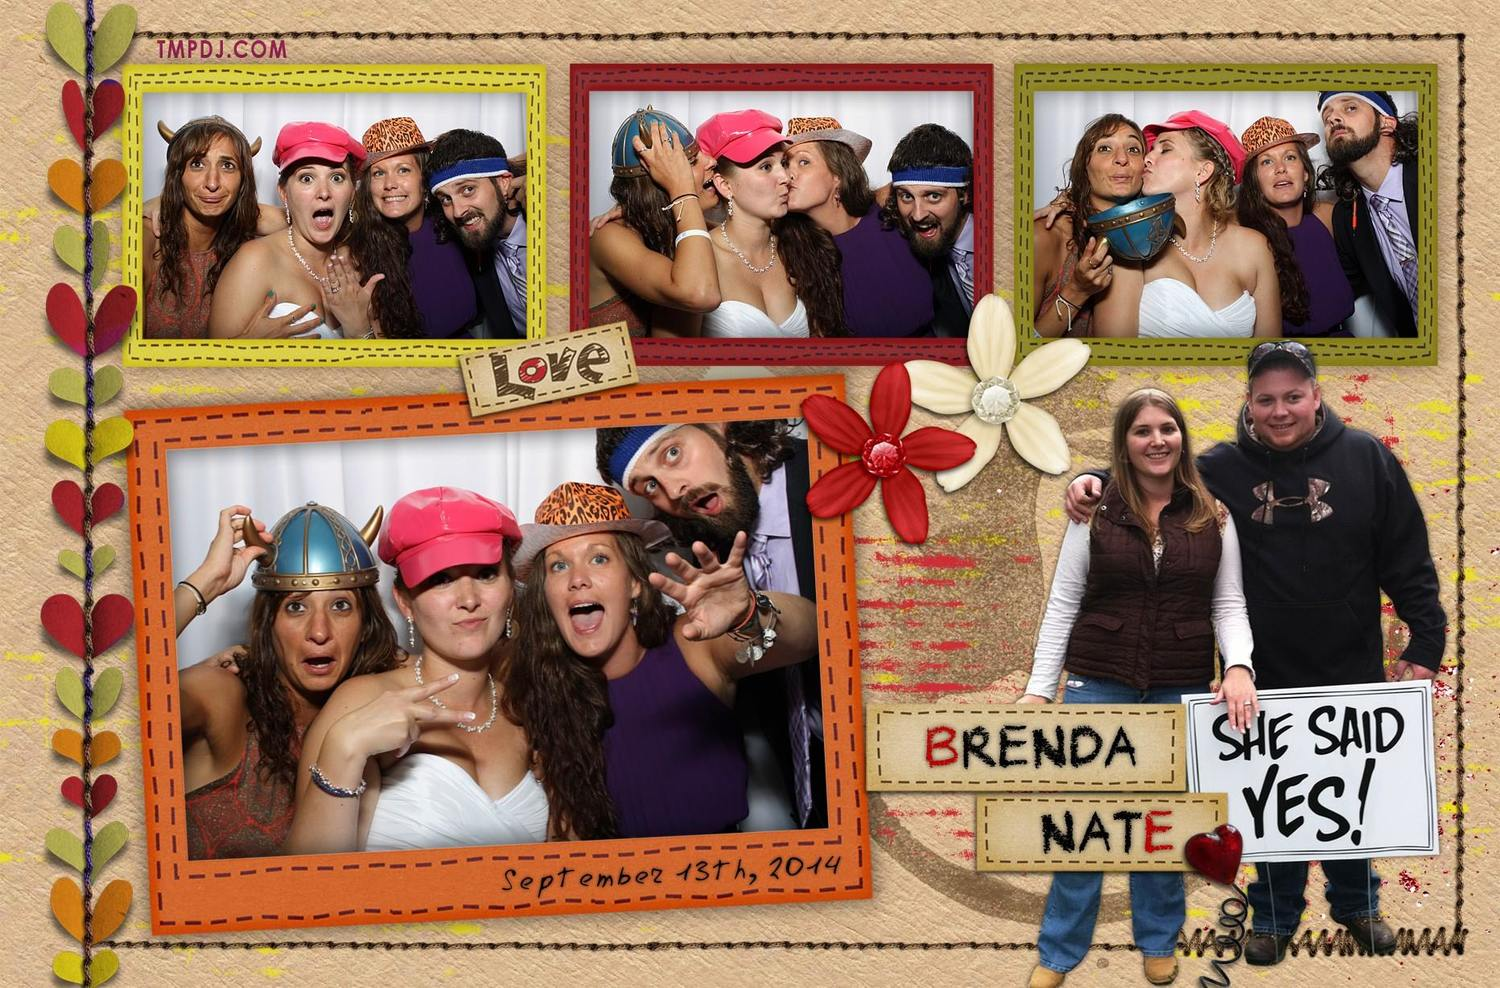 photo-booth-rochester-ny-9.jpg